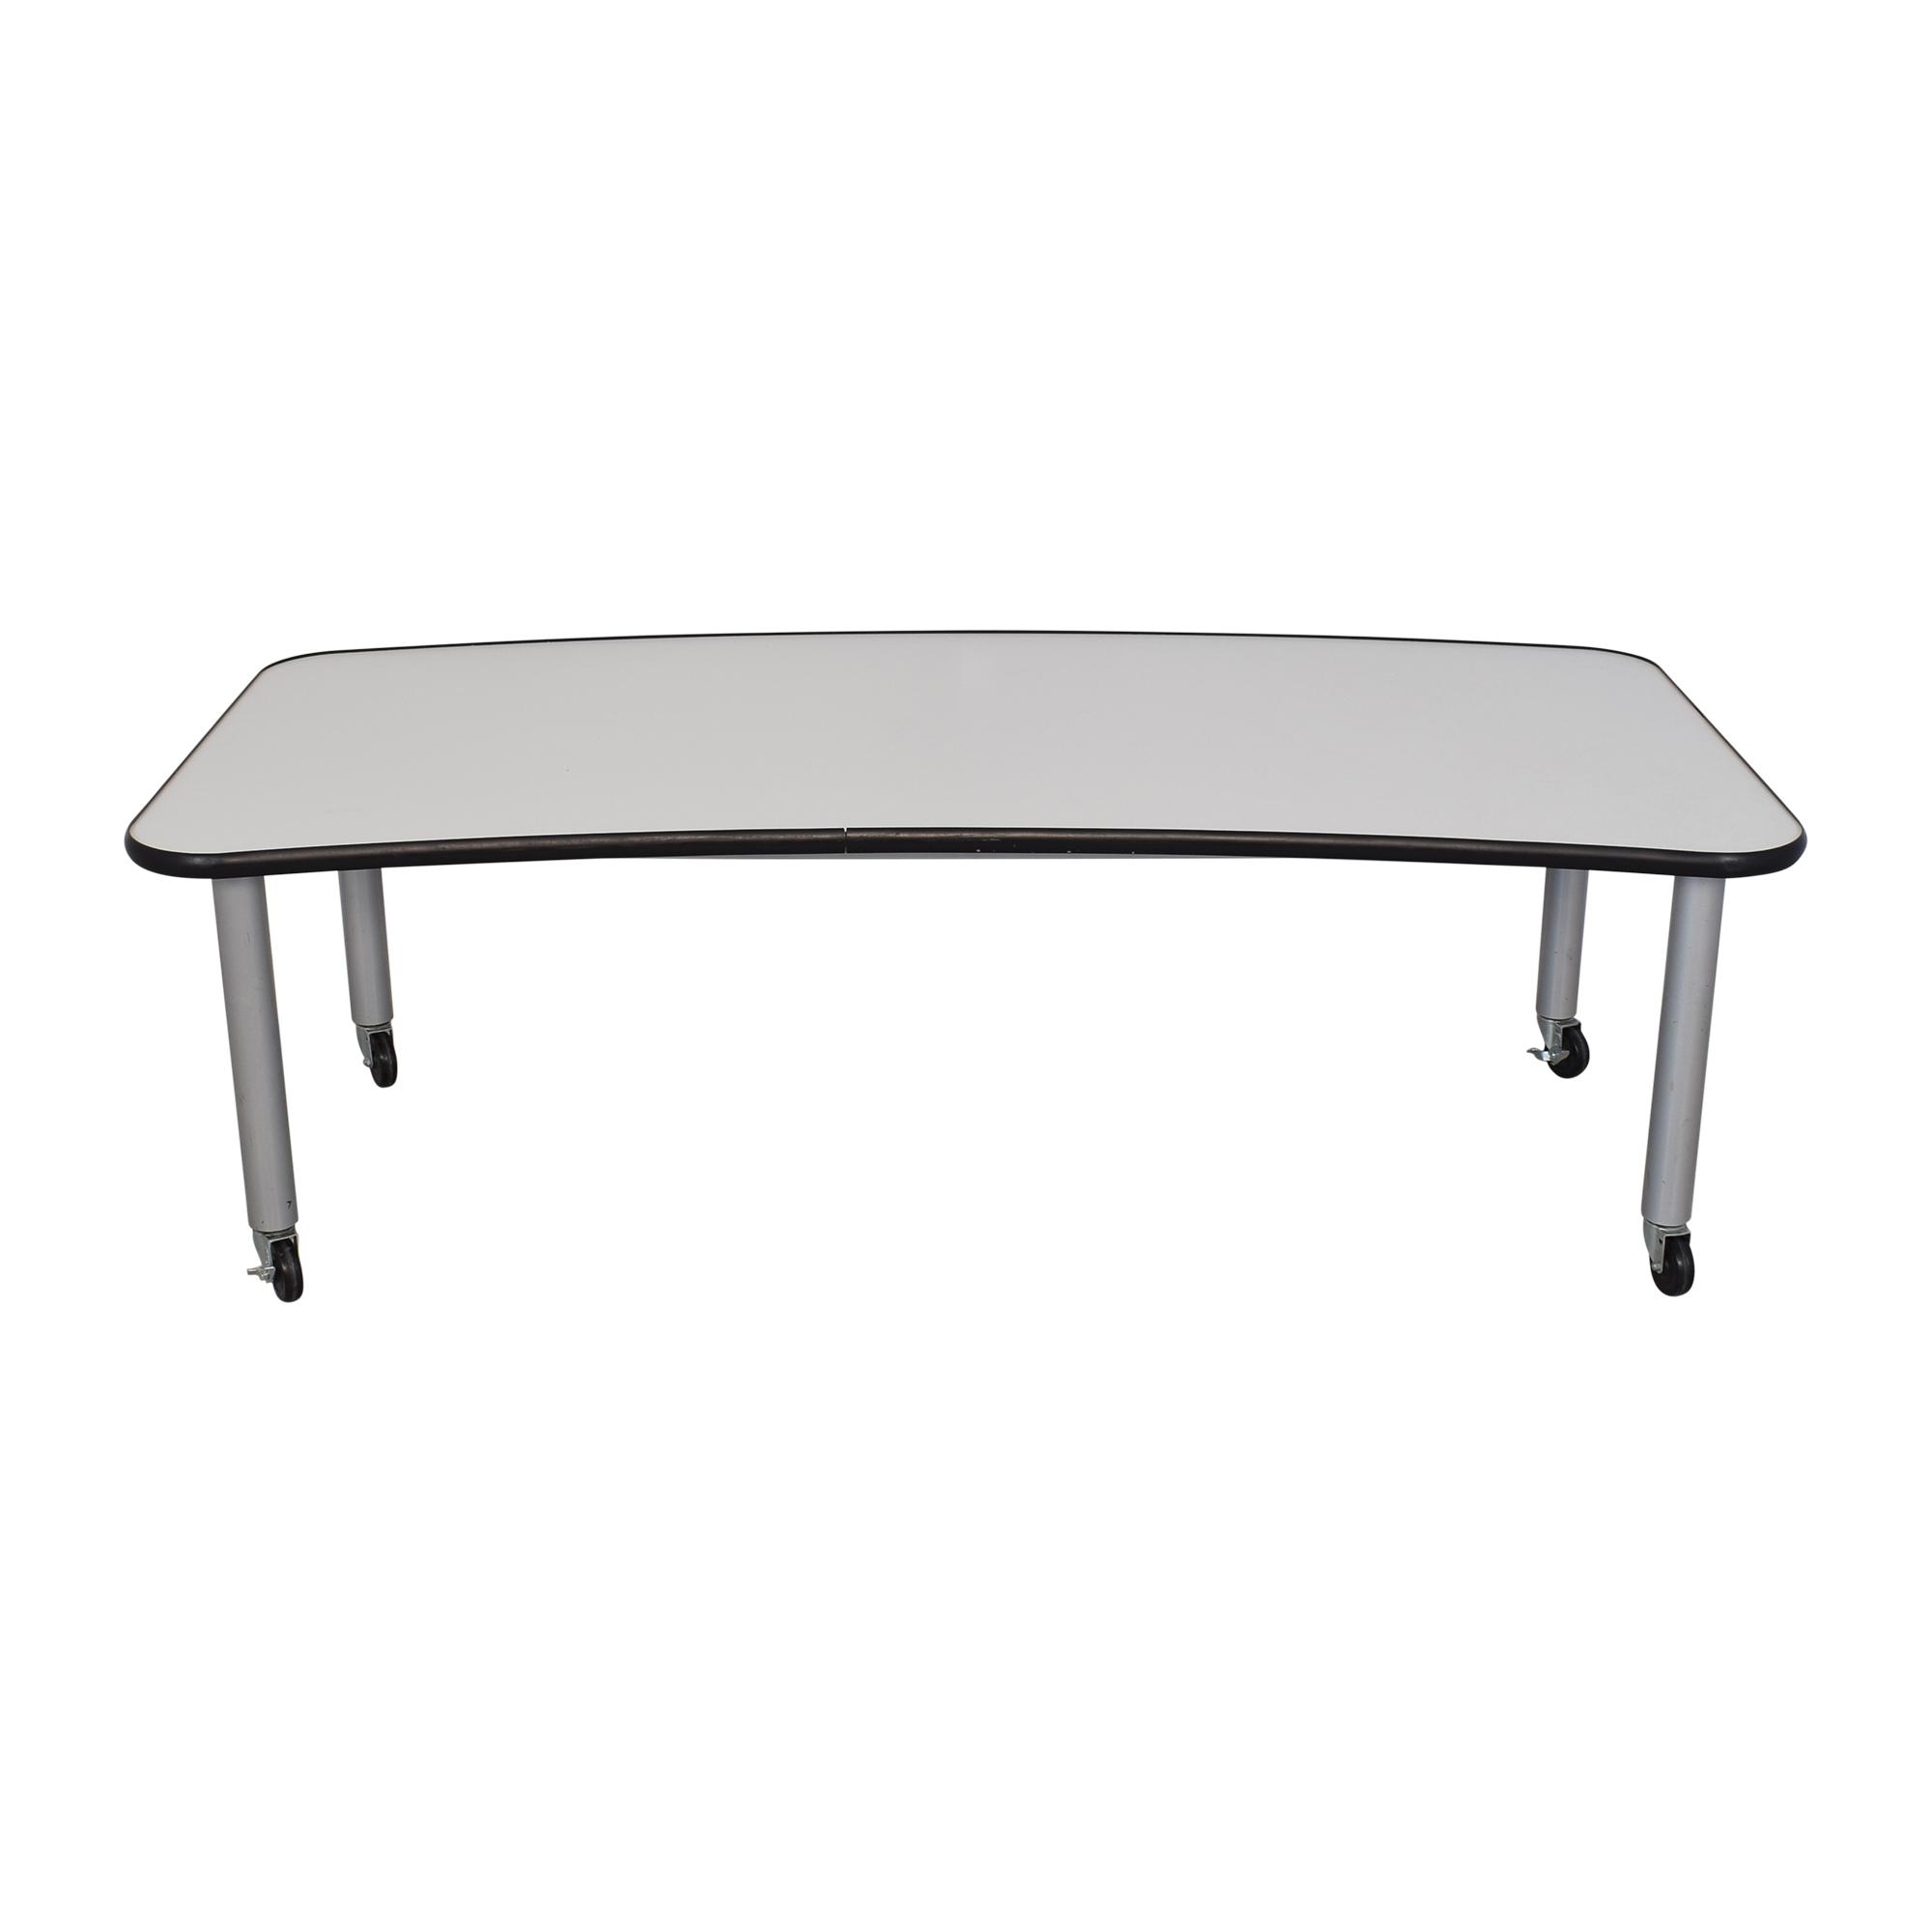 Conference Table with Wheels second hand